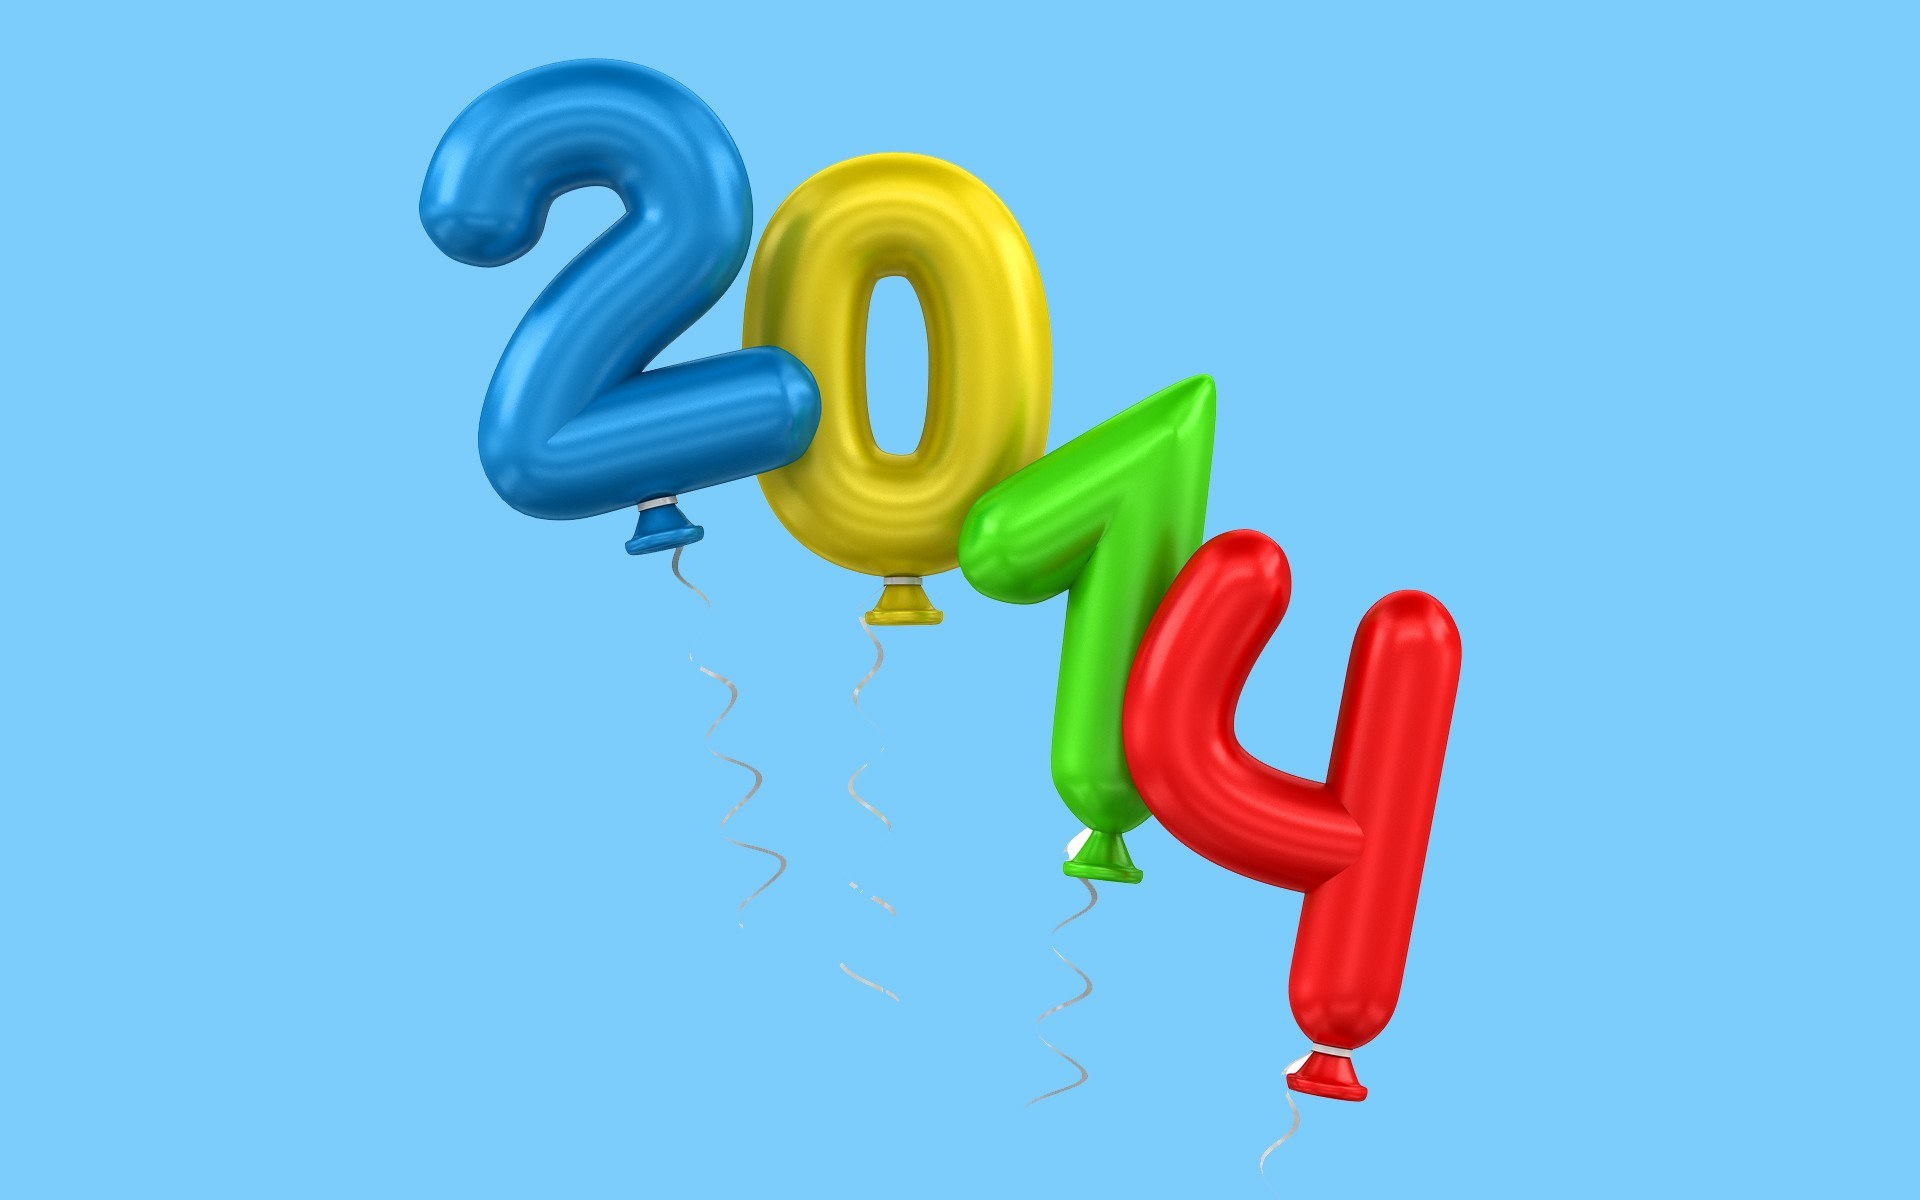 Beautiful-Happy-New-Year-2014-HD-Wallpapers-by-techblogstop-16